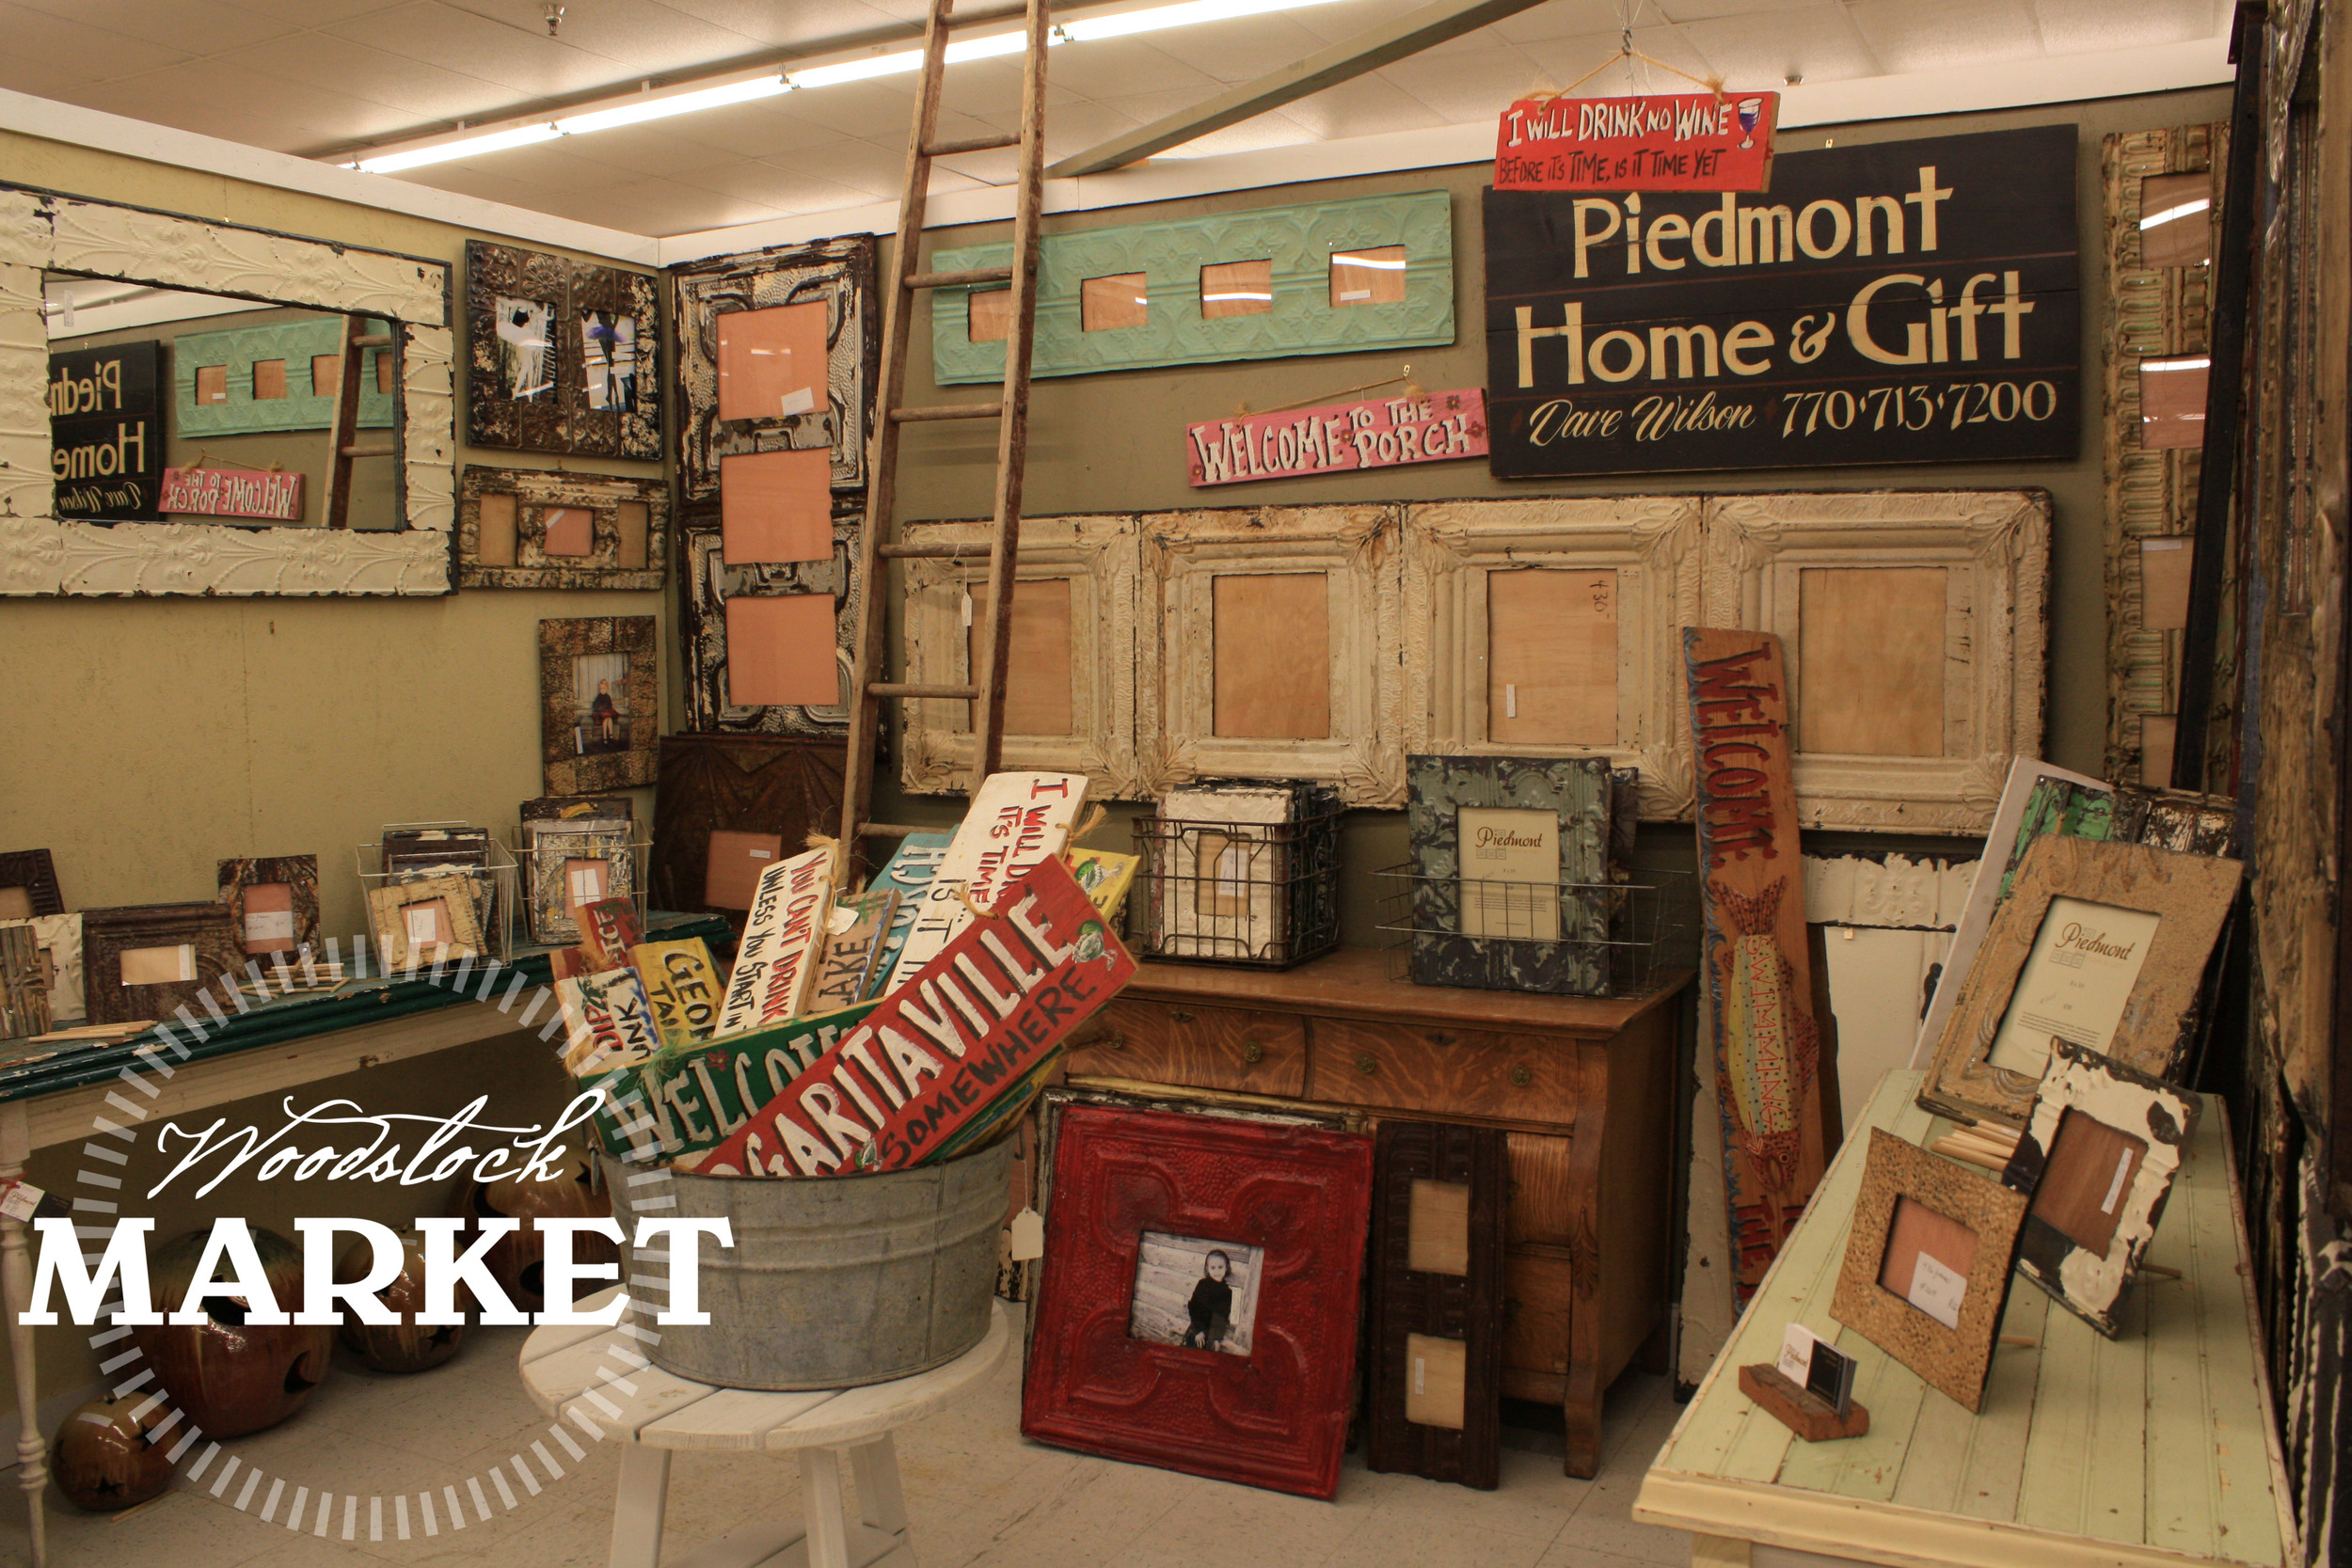 Piedmont Home & Gift